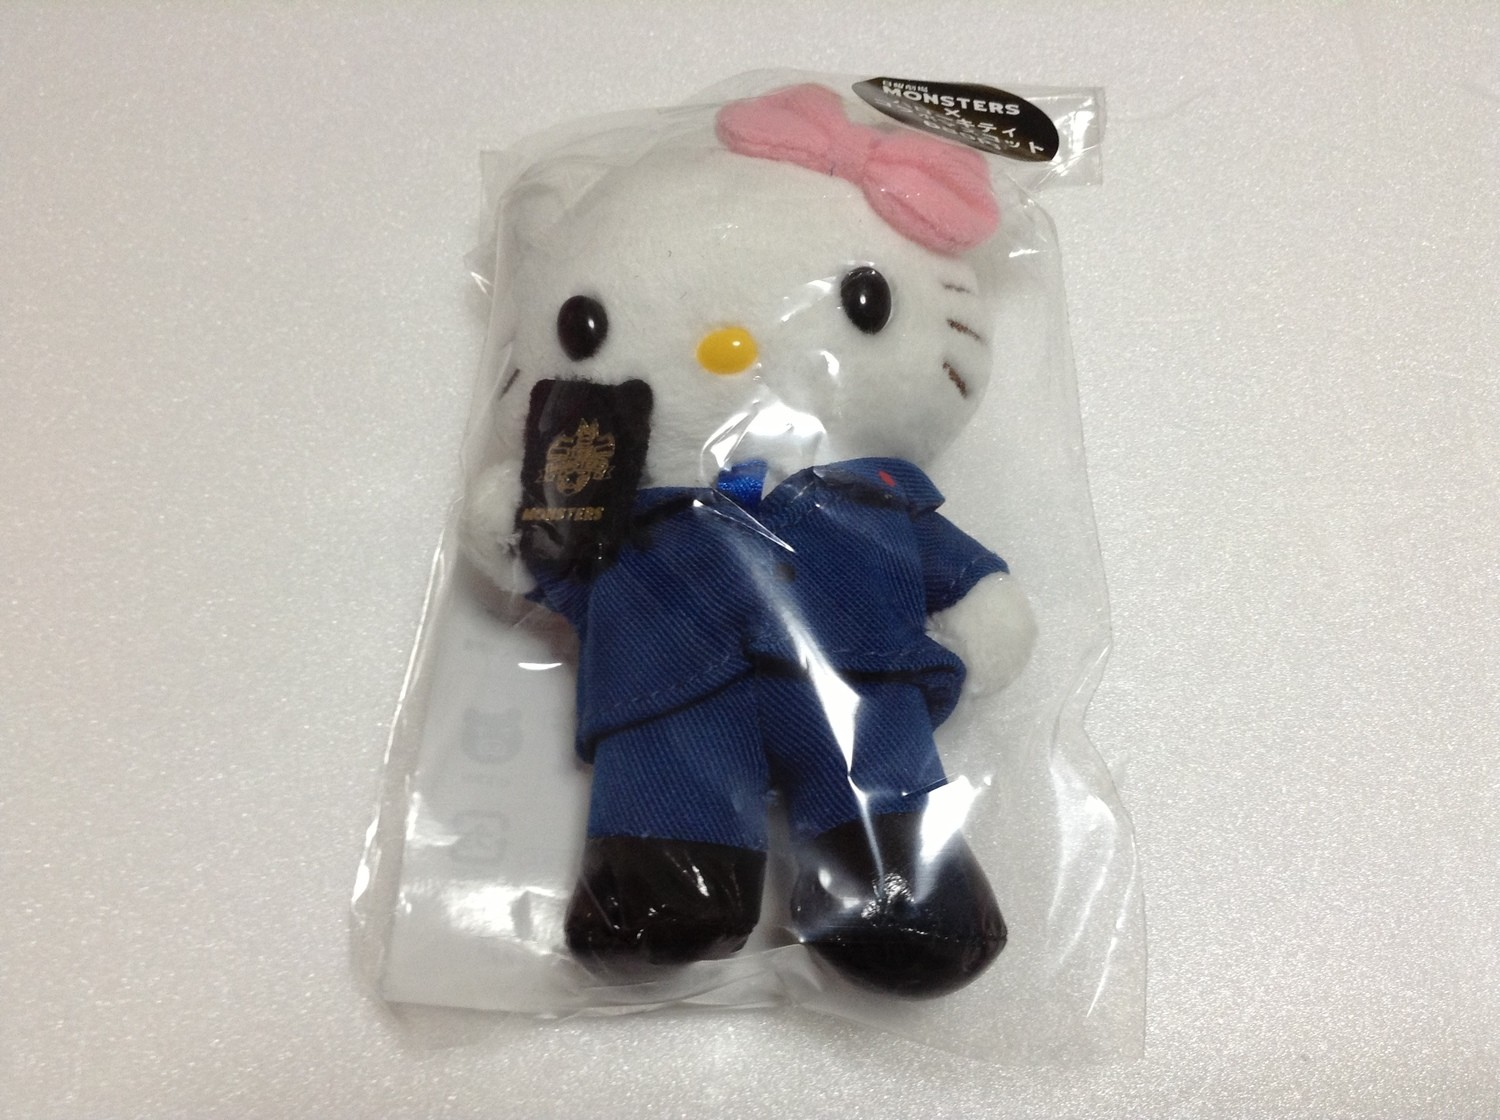 MONSTERS 7-11 Hello Kitty Yamapi Mascot Strap